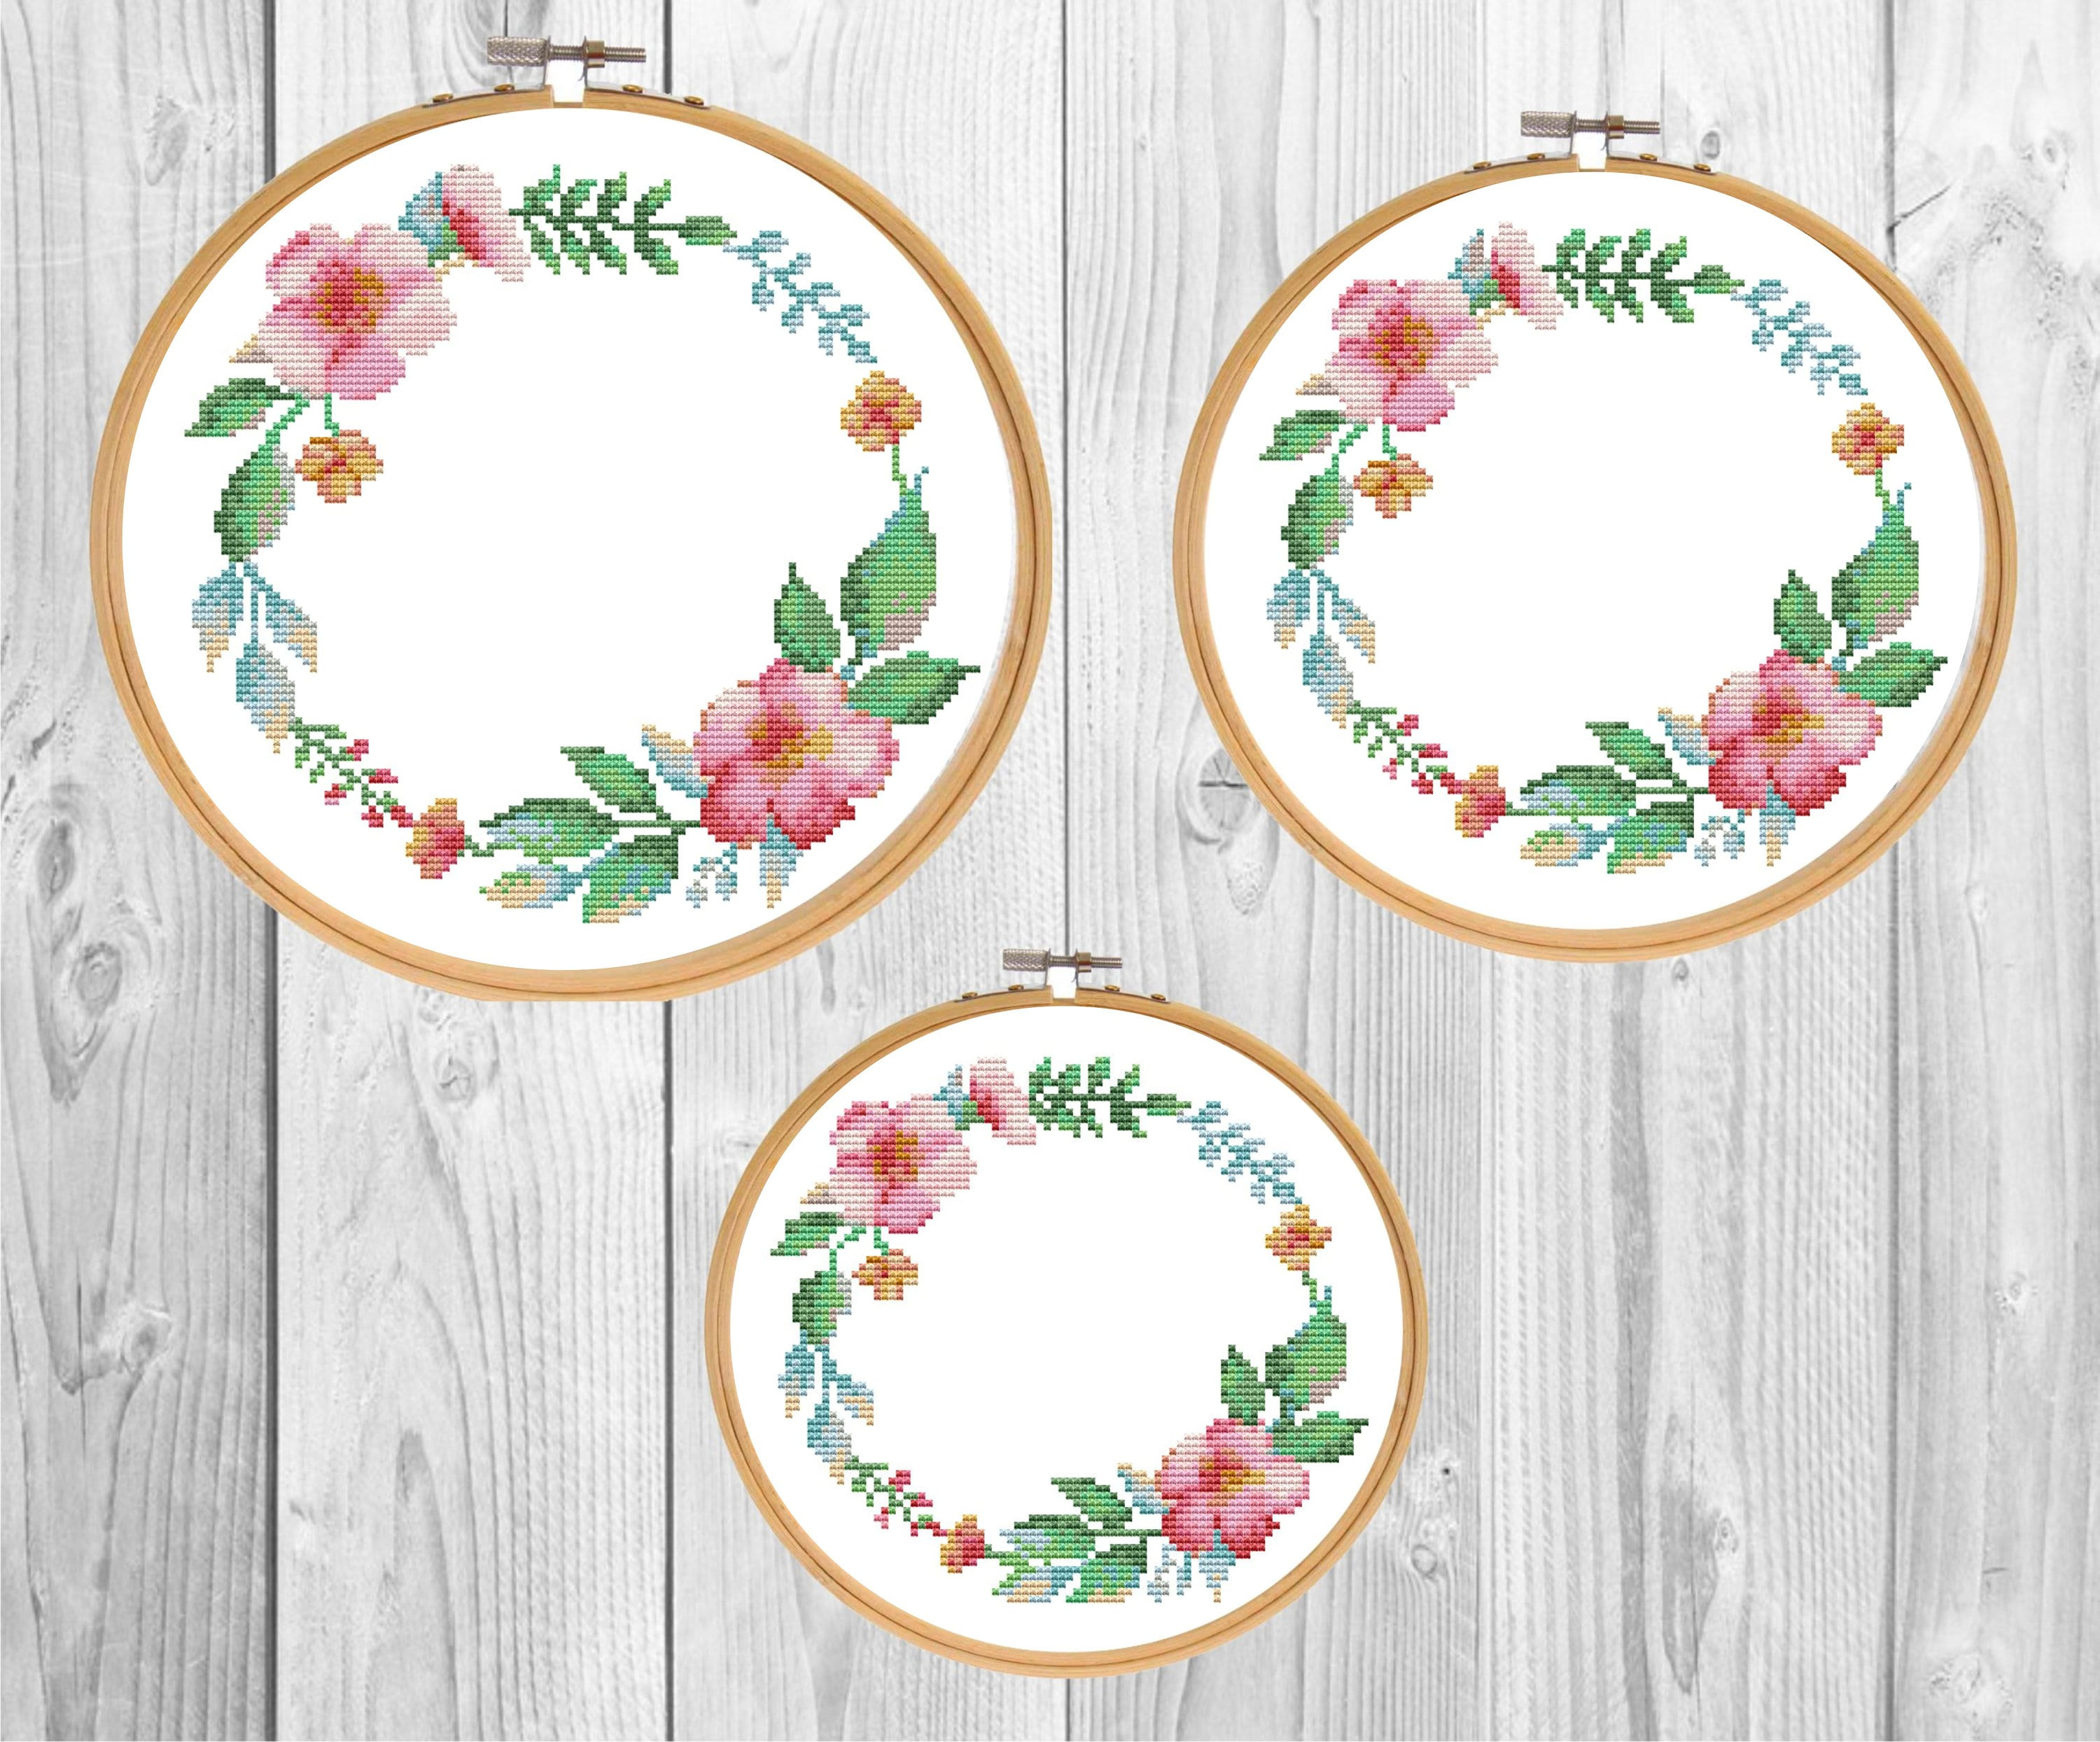 Pastel Watercolor Floral Border Square Frame Counted Cross Stitch Embroidery Pattern PDF Download